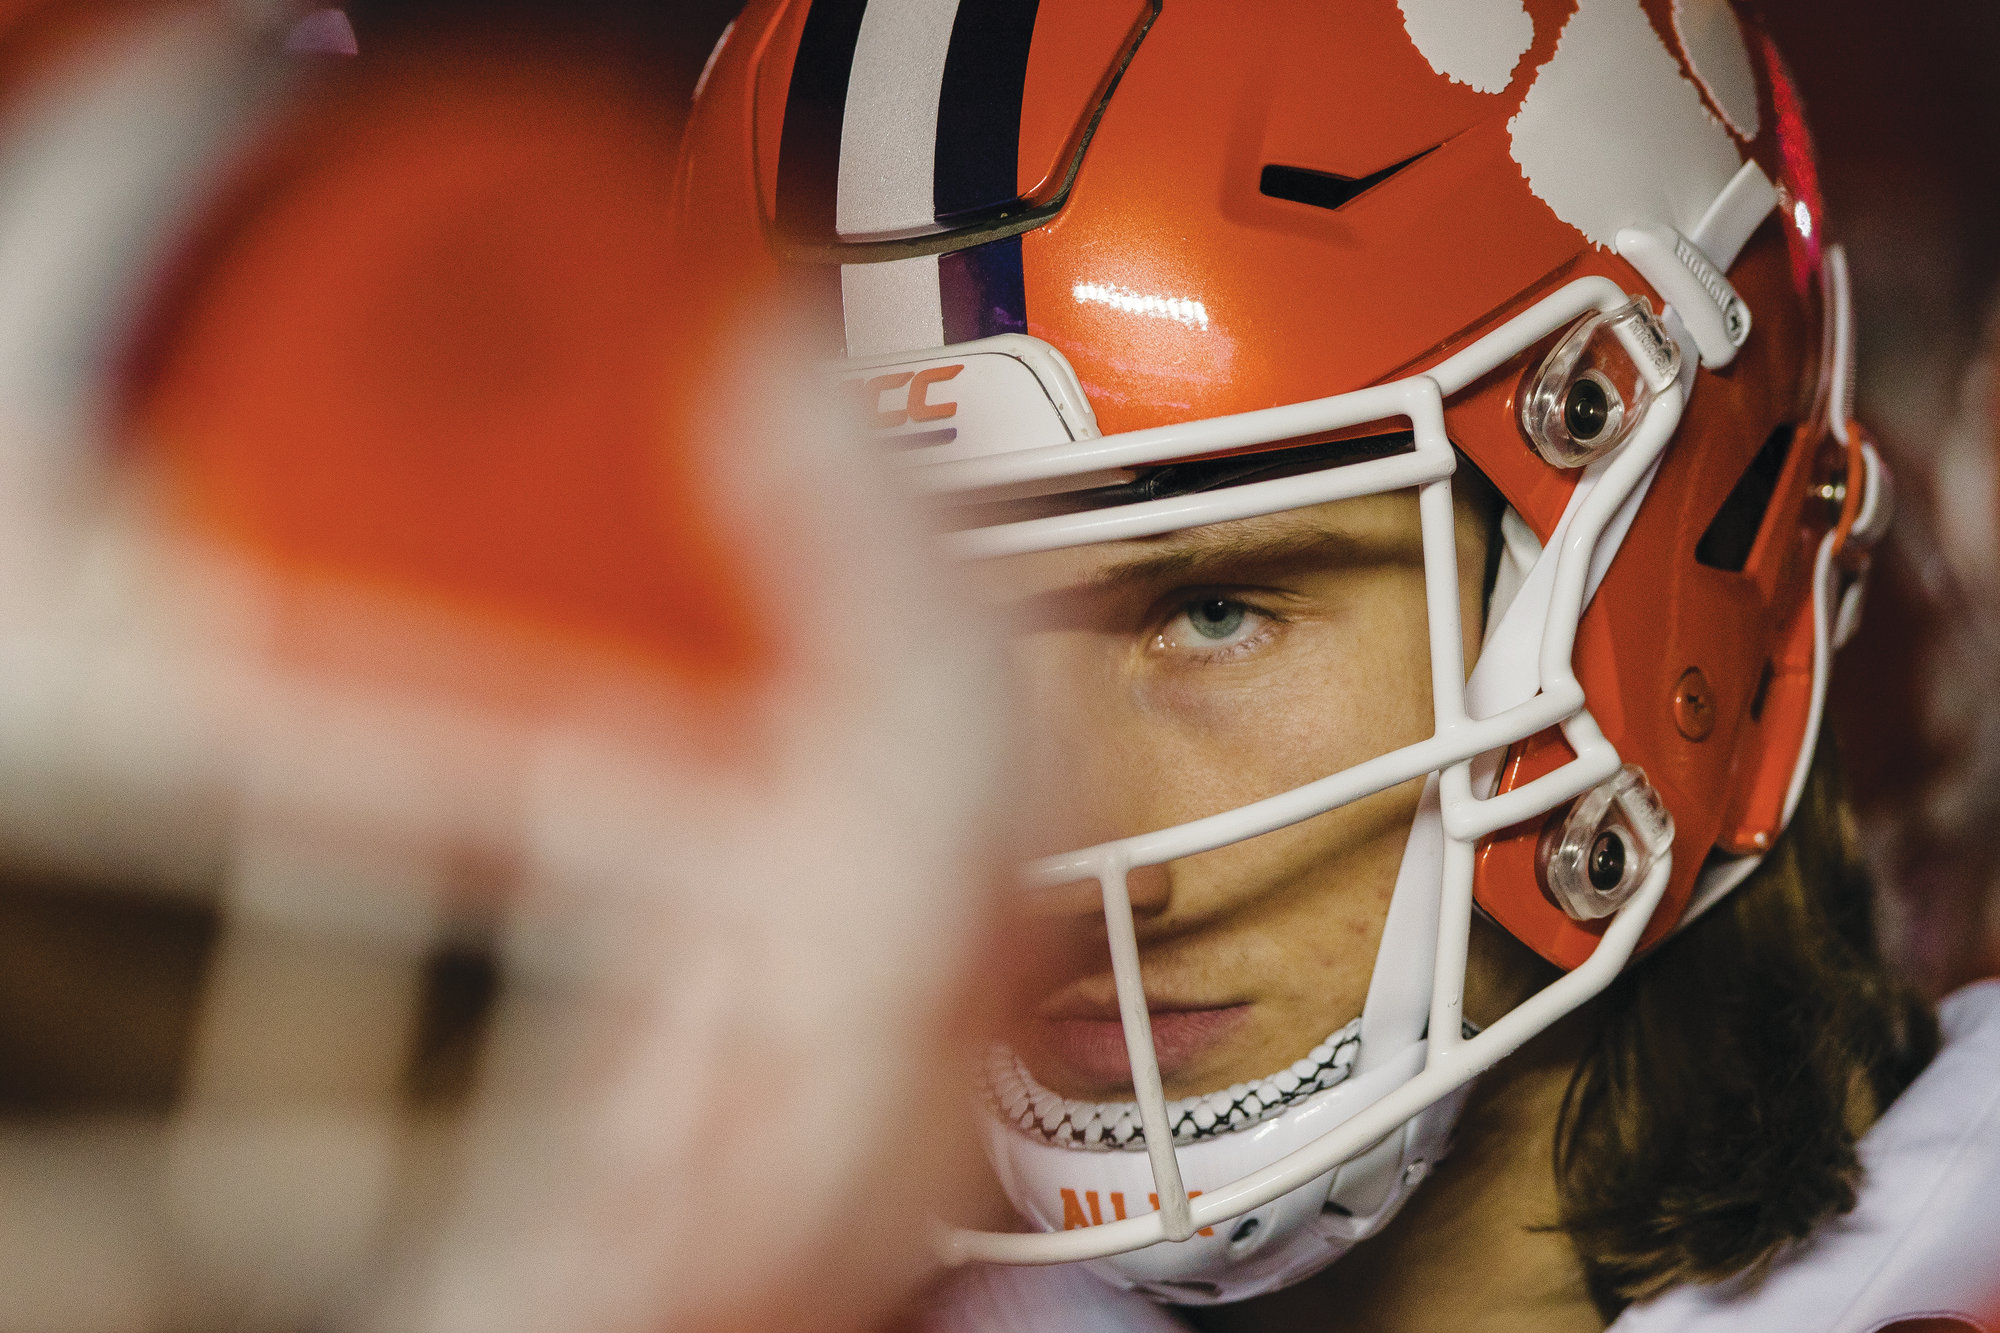 Clemson quarterback Trevor Lawrence will be one of few returning QBs in the ACC this season as other teams try to replace their field generals lost to graduation, transfer, early NFL draft declaration or disciplinary issues.